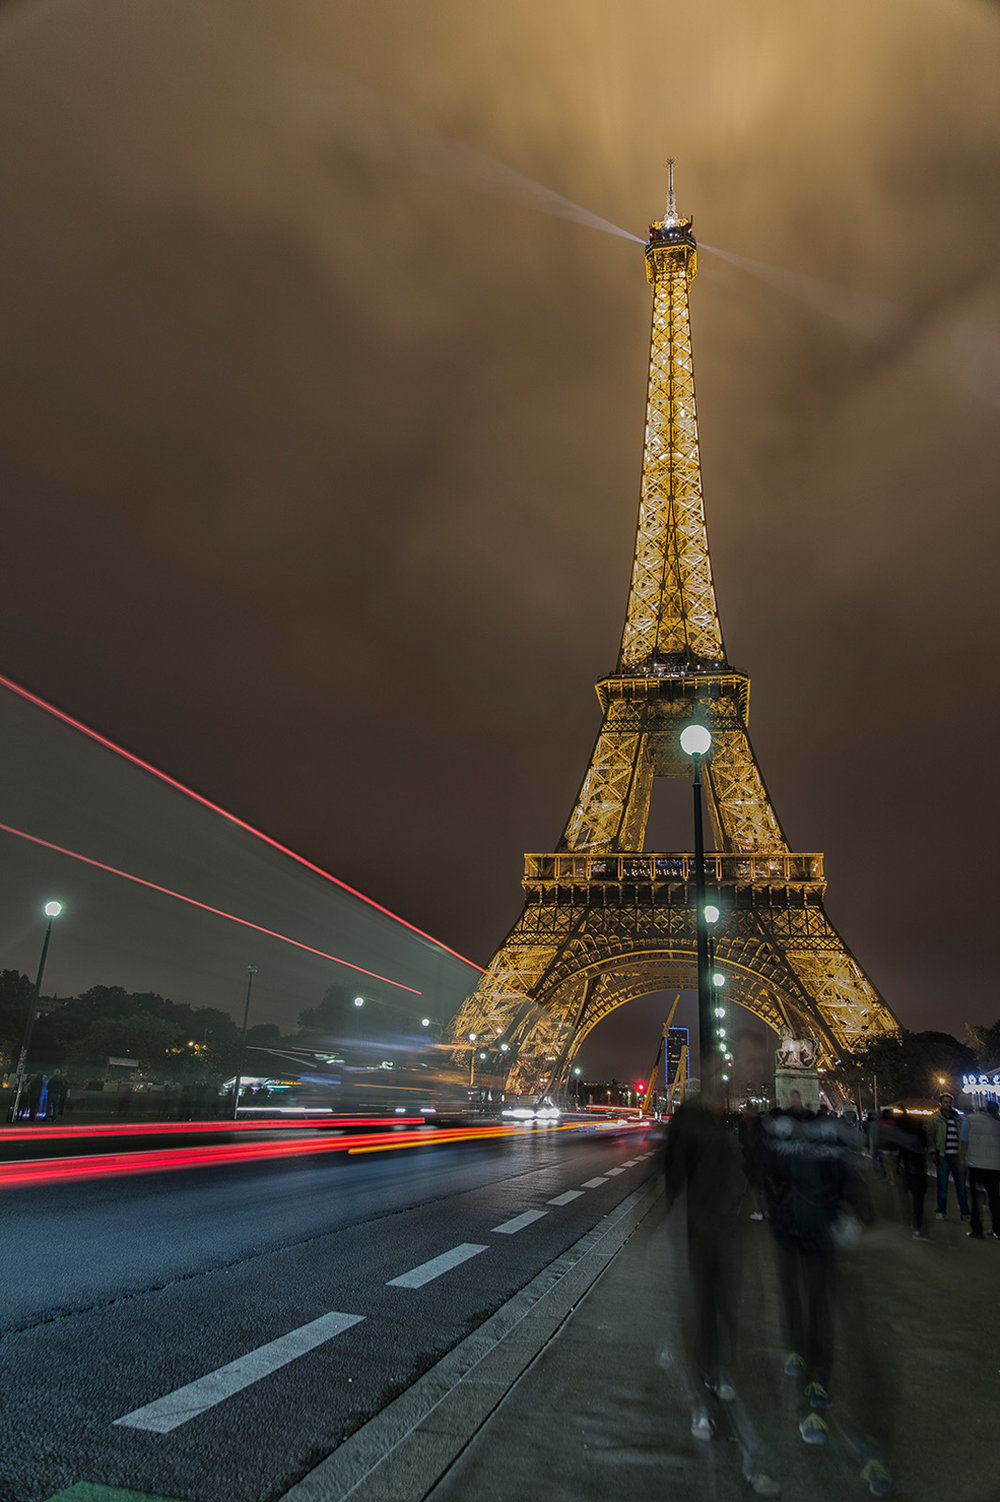 kp-eiffel-tower-and-streetscape-at-night_24-105mm.jpg